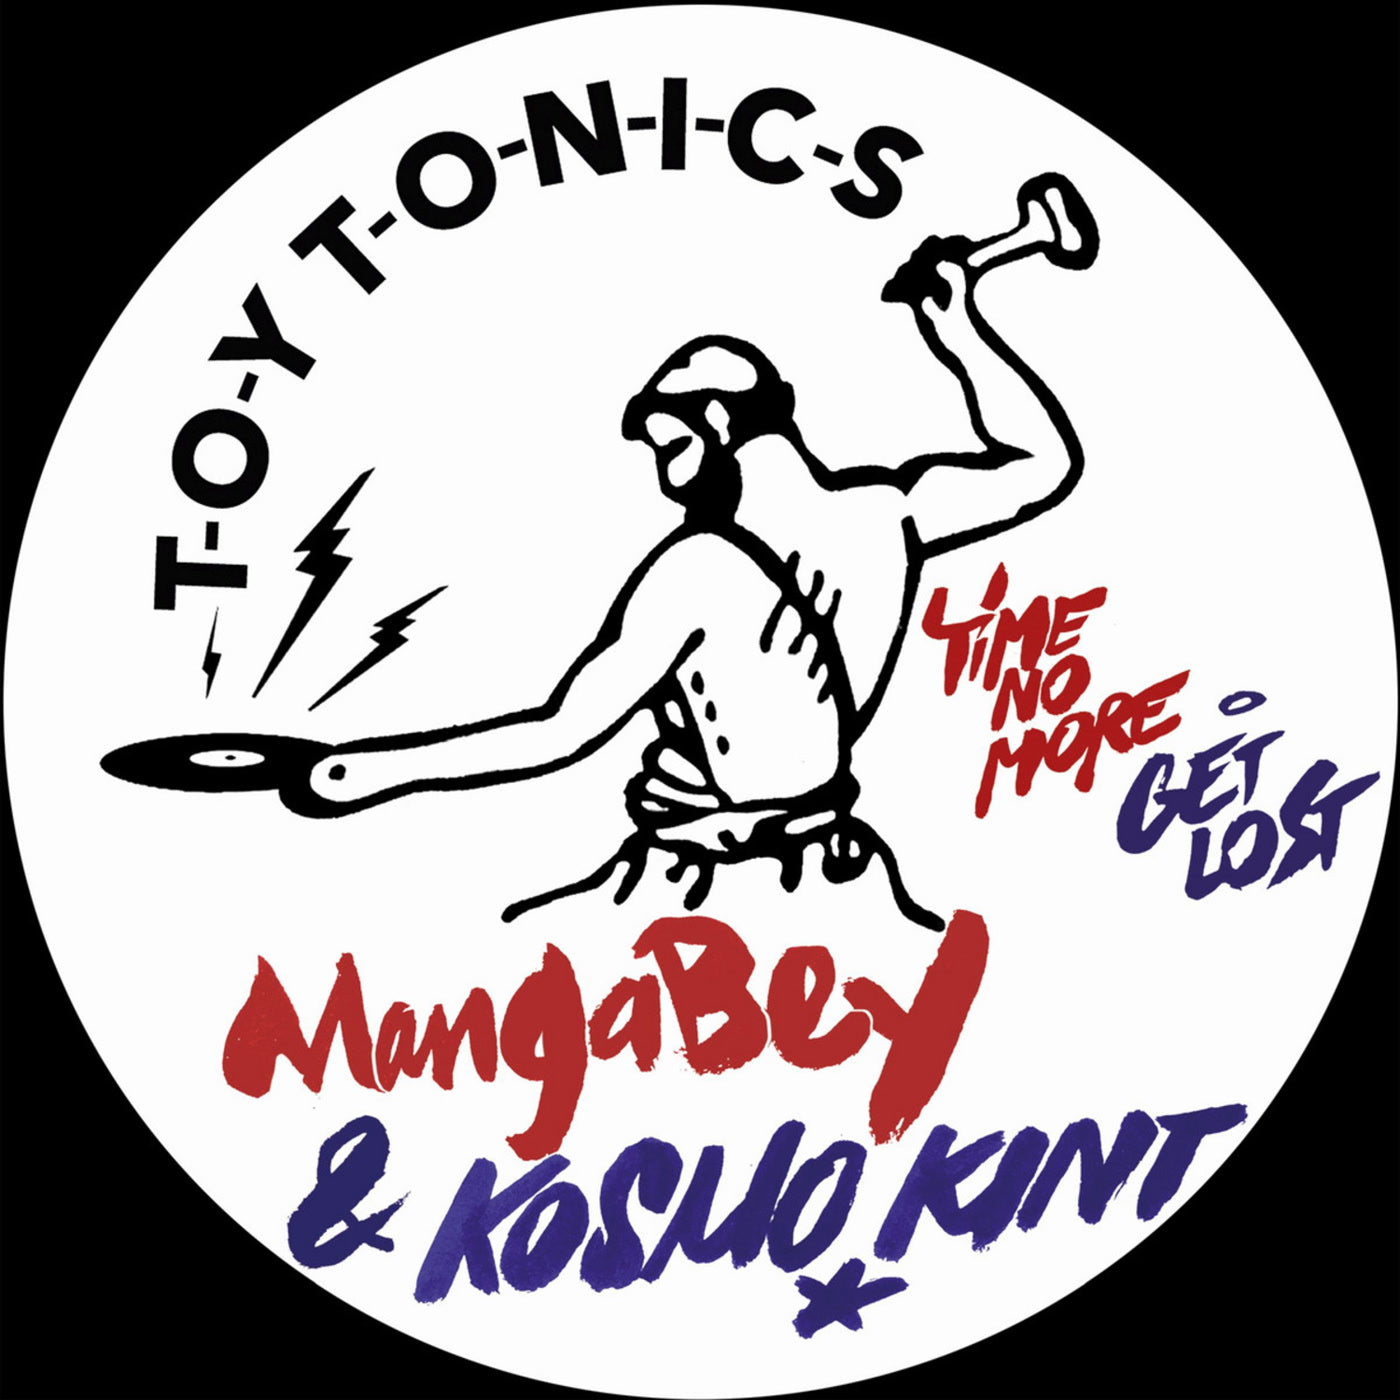 Mangabey & Kosmo Kint ‎'Time No More / Get Lost' 12""